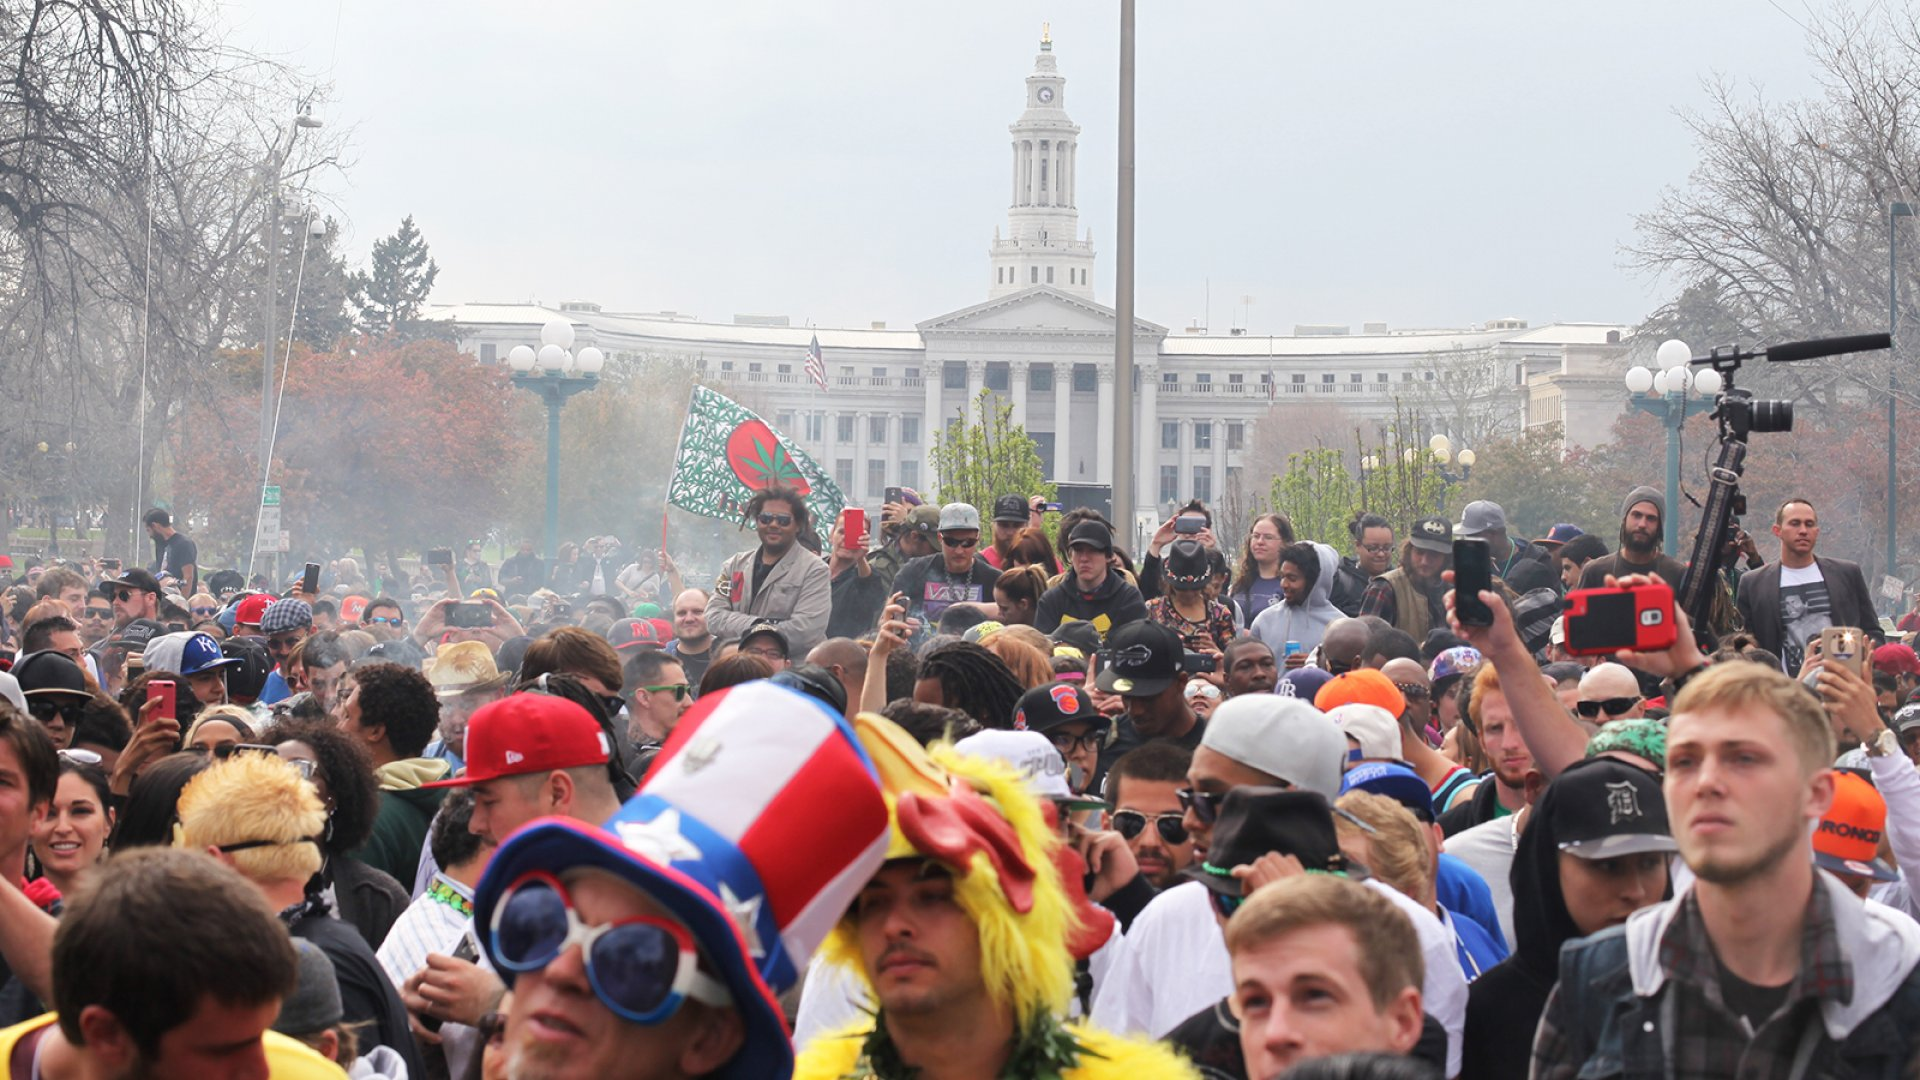 Revelers light up in Denver on 4/20, the pot holiday.